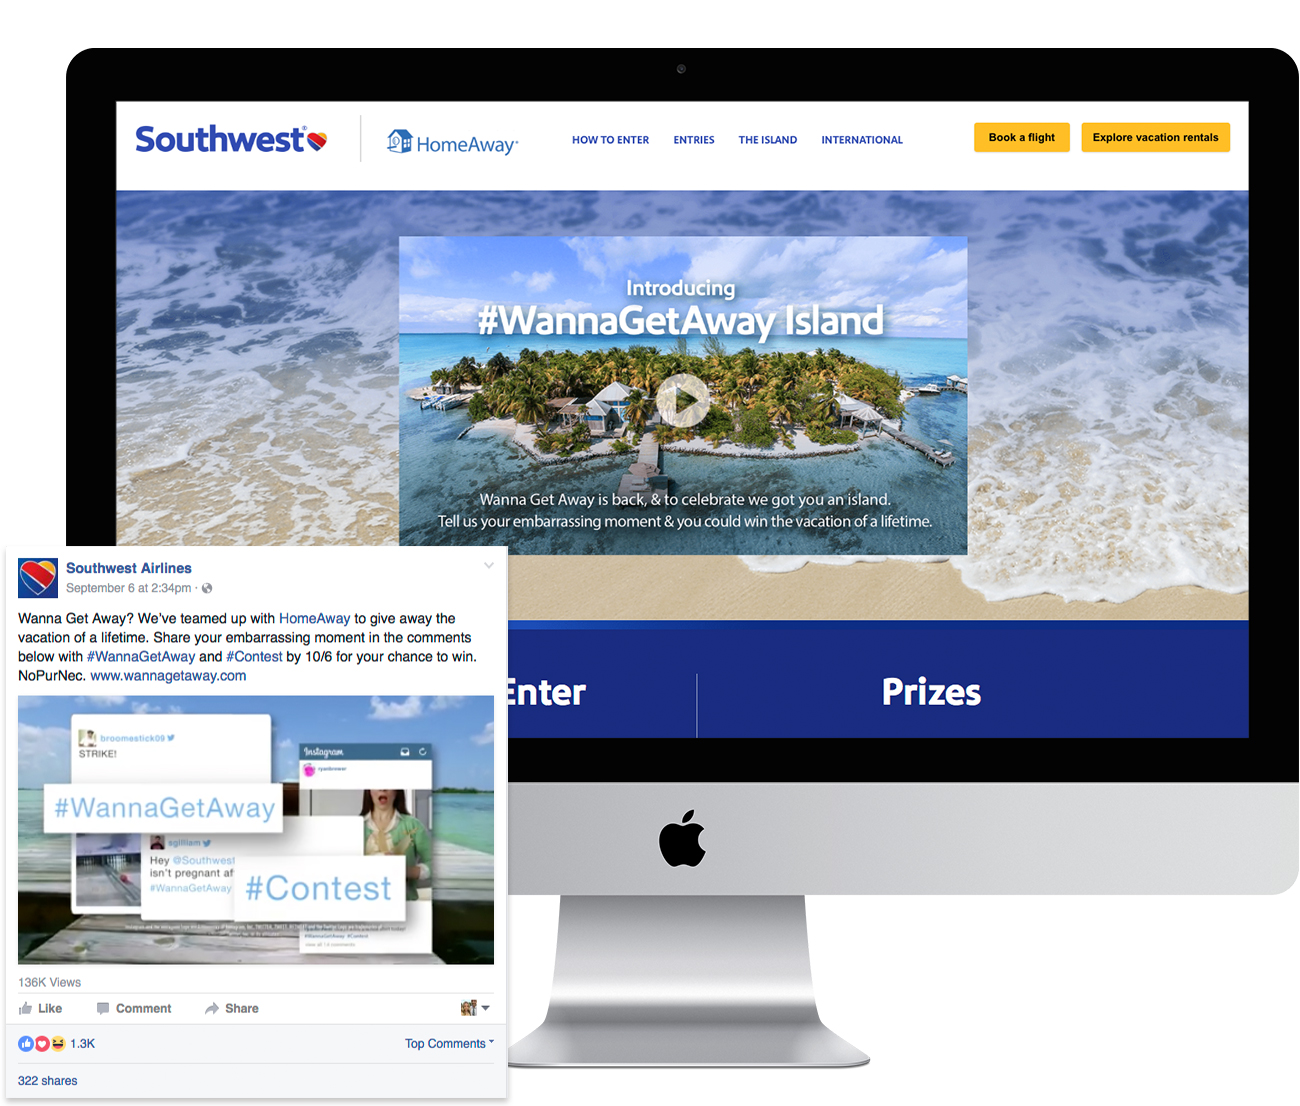 Southwest Airlines Wanna Get Away promotion entry